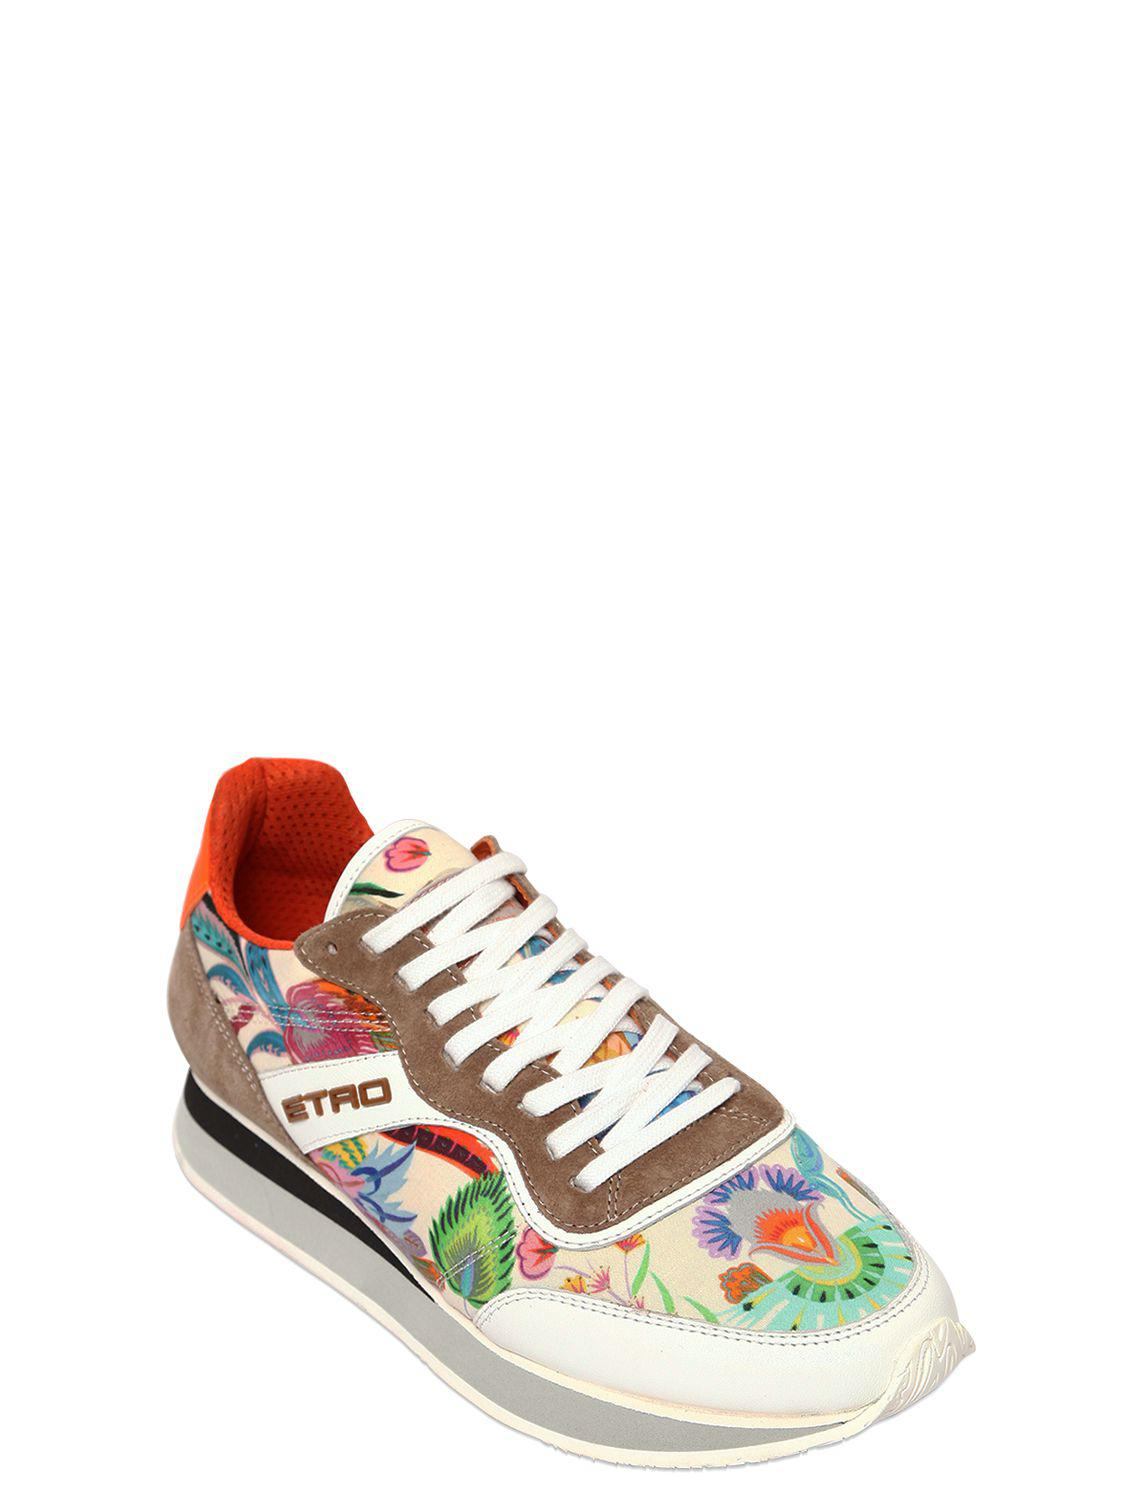 Etro 20MM PAISLEY SATIN RUNNING SNEAKERS g7D1lx5fR